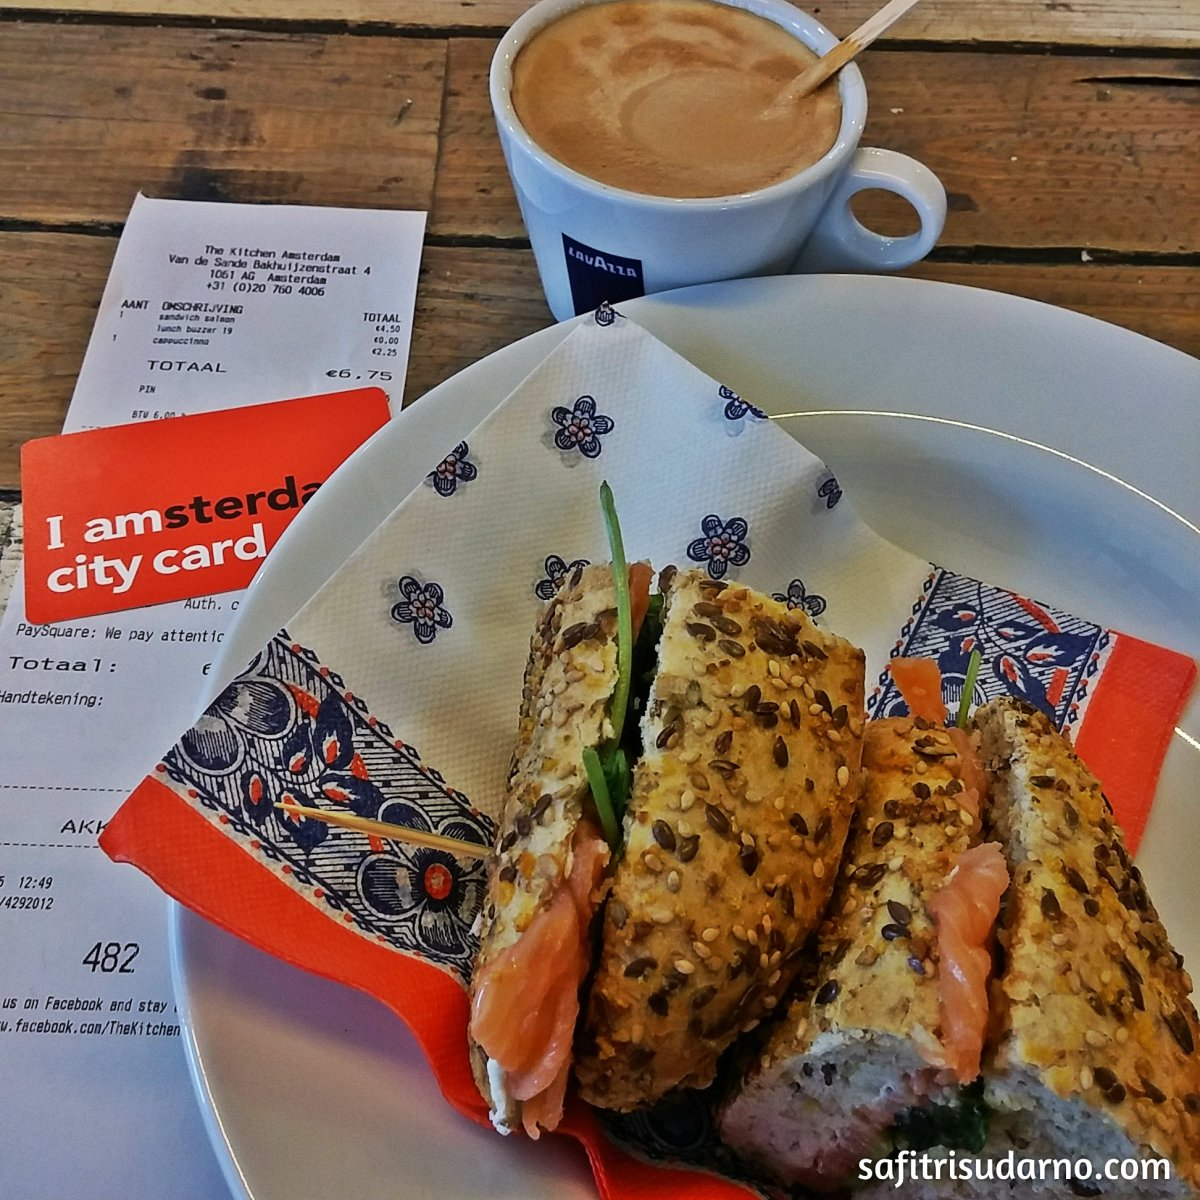 Sandwich Salmon and I amsterdam City Card